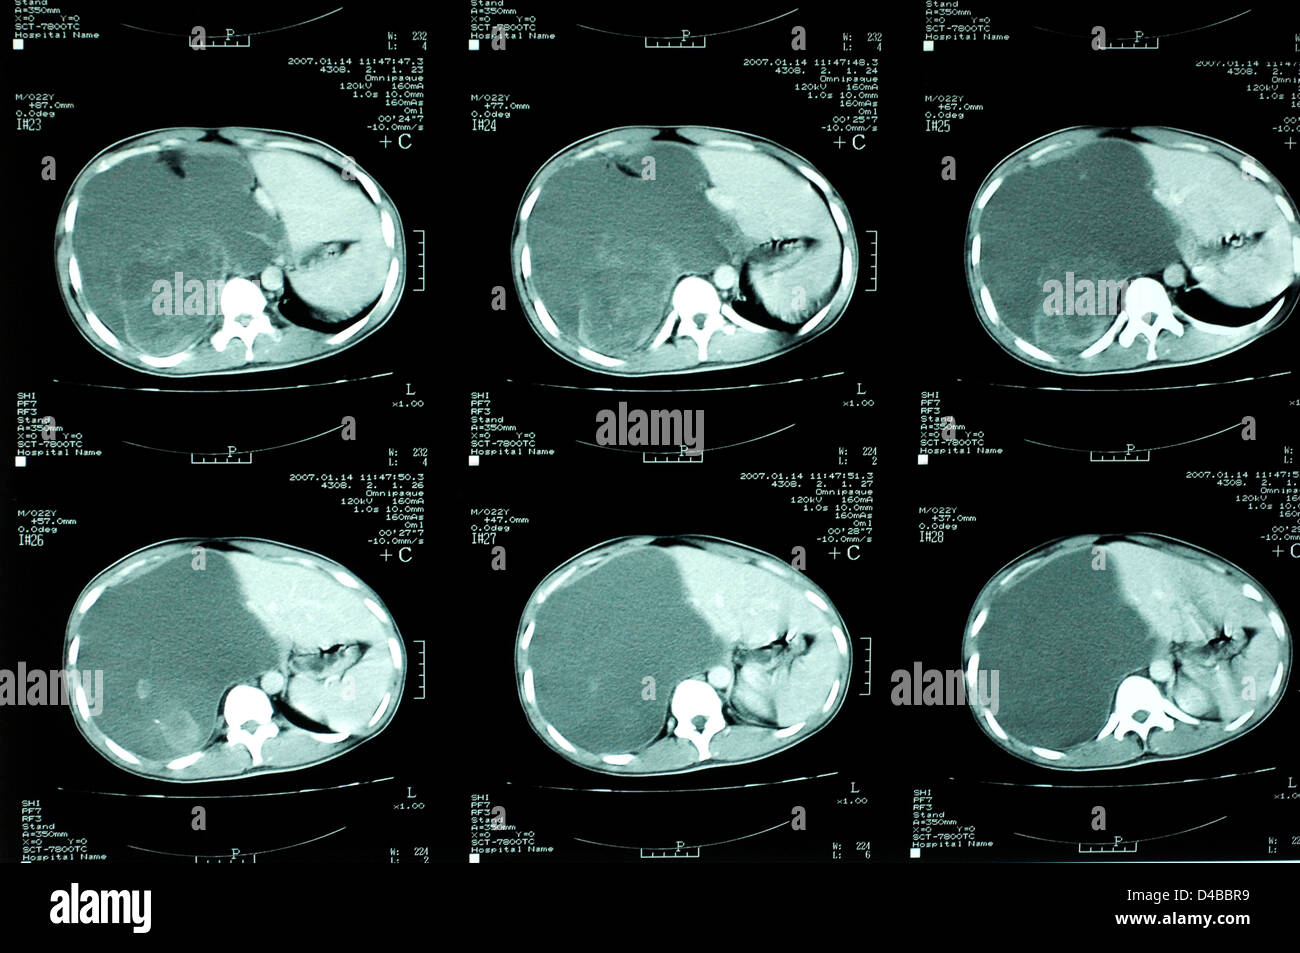 Radiology. CT scan showing a blood pooling on the right side of a patient's abdomen following recent trauma. - Stock Image